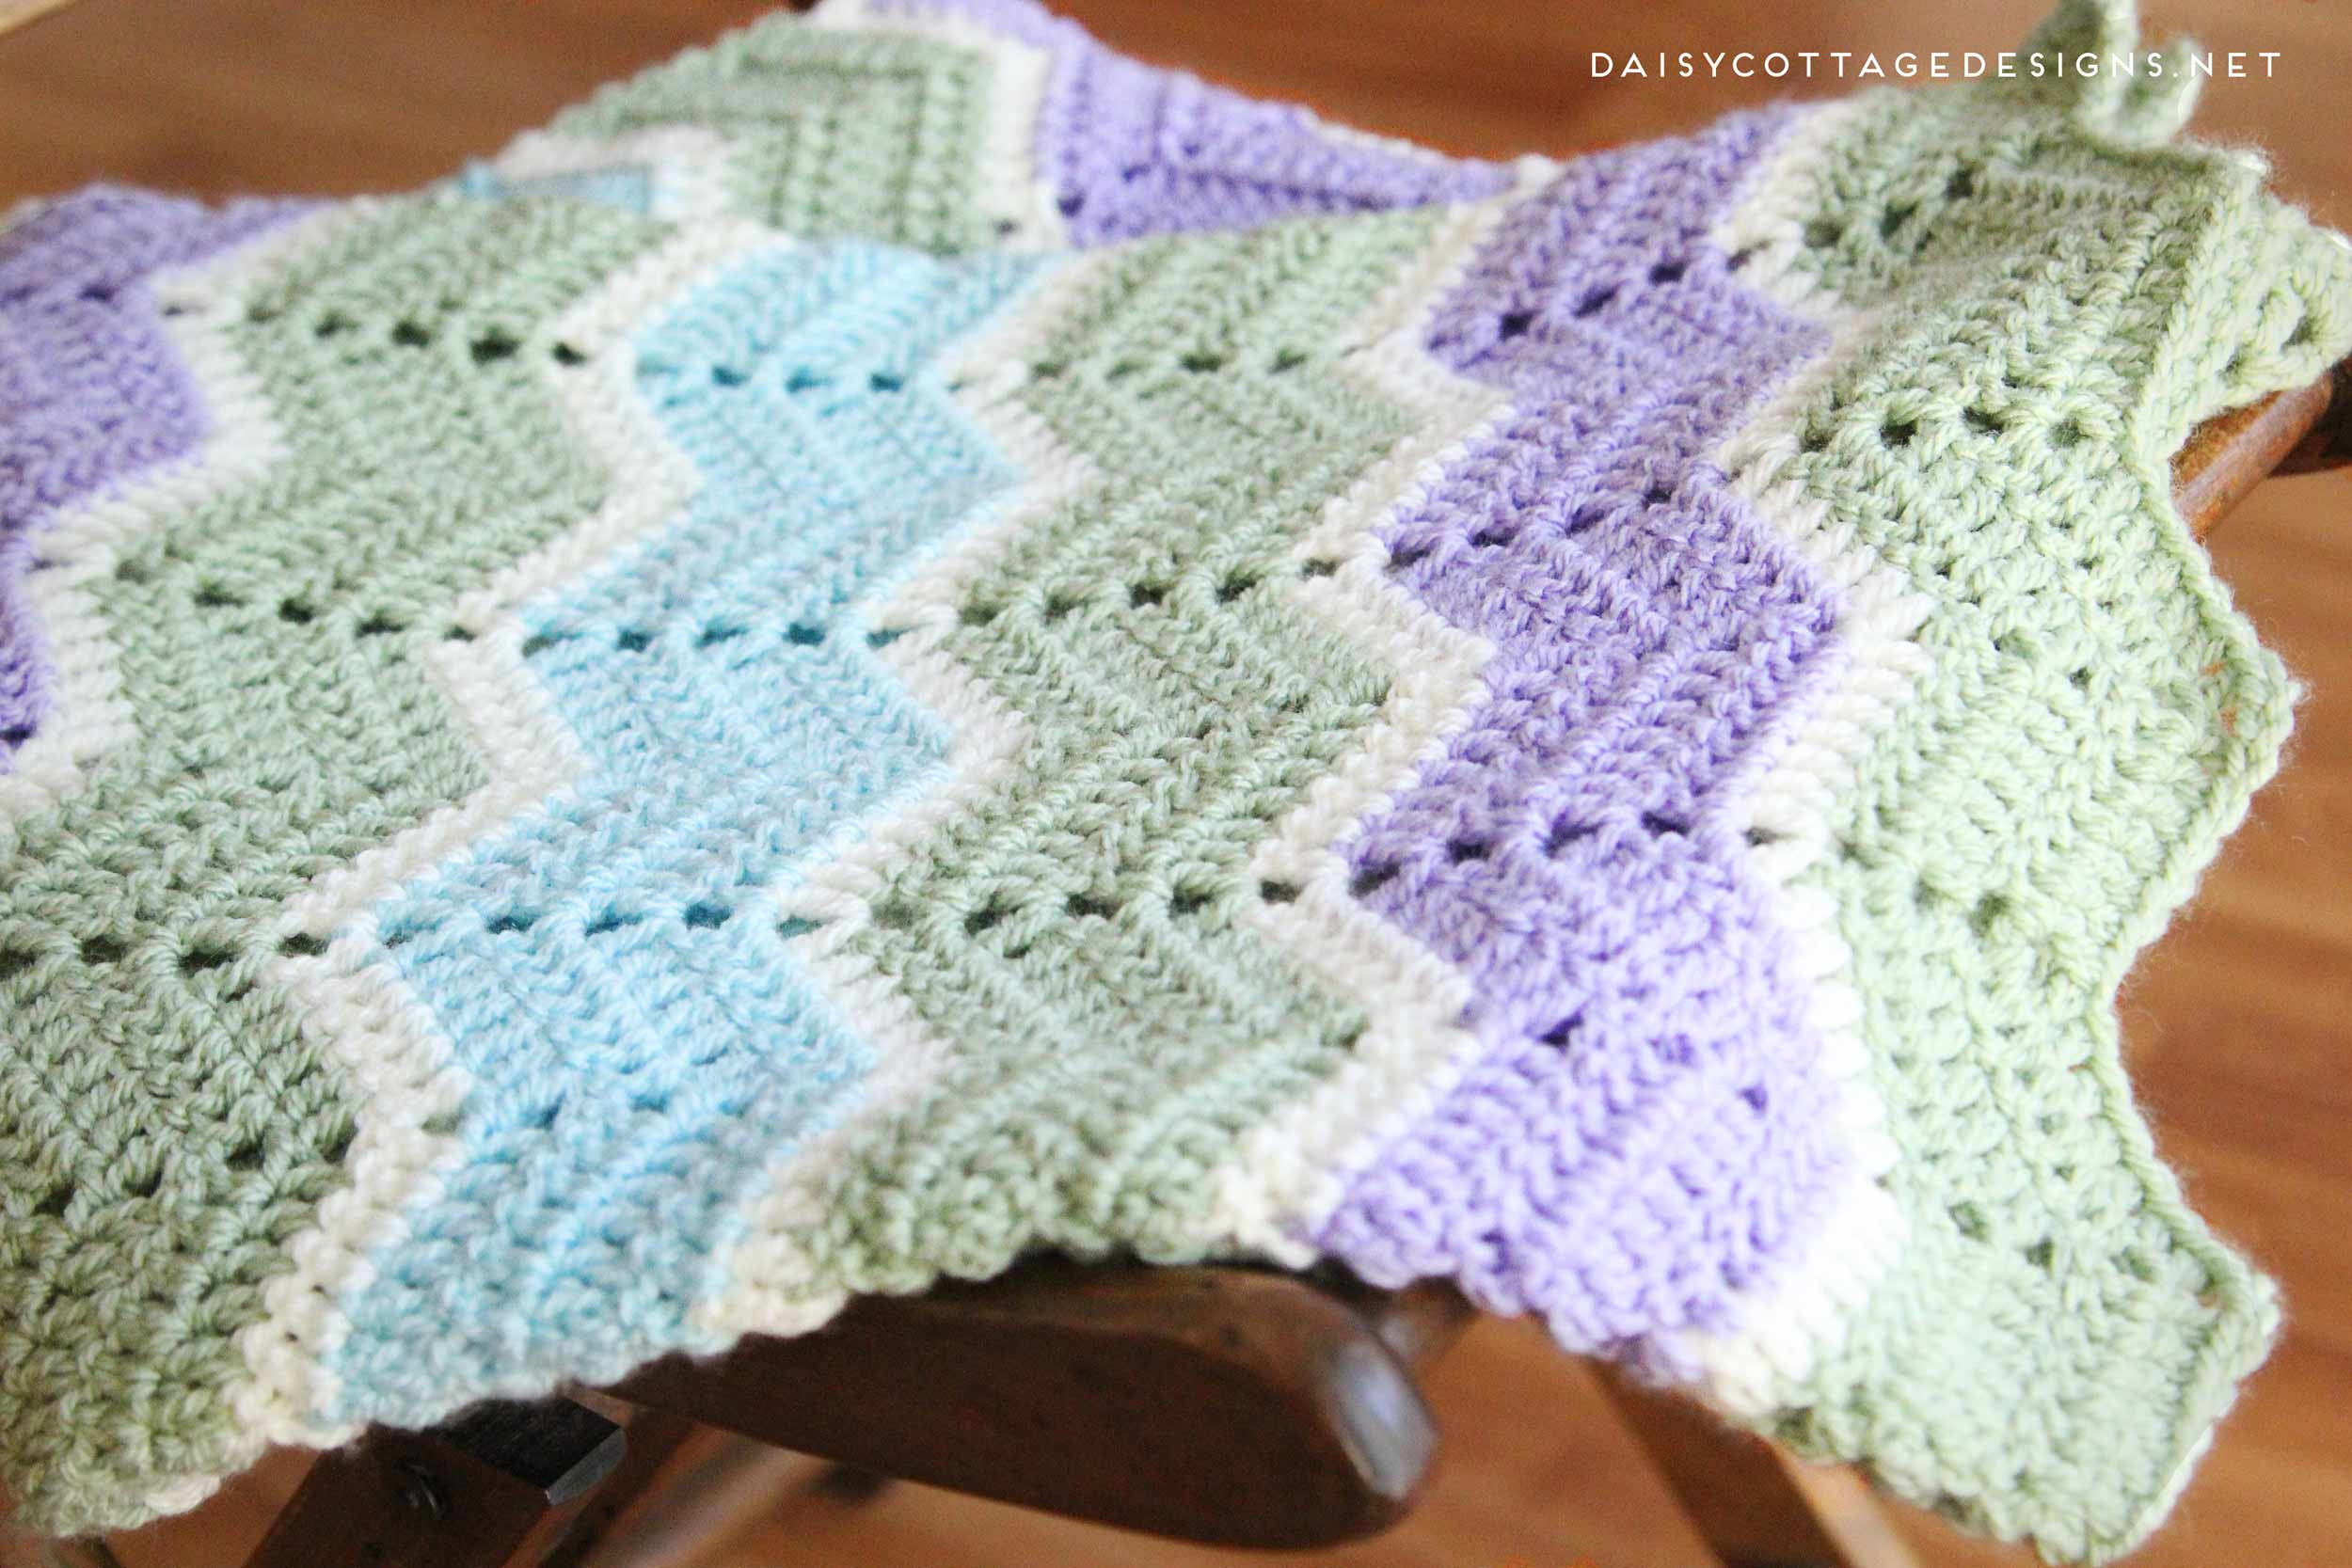 Inspirational Easy Chevron Blanket Crochet Pattern Daisy Cottage Designs Easiest Crochet Blanket Of New 50 Images Easiest Crochet Blanket